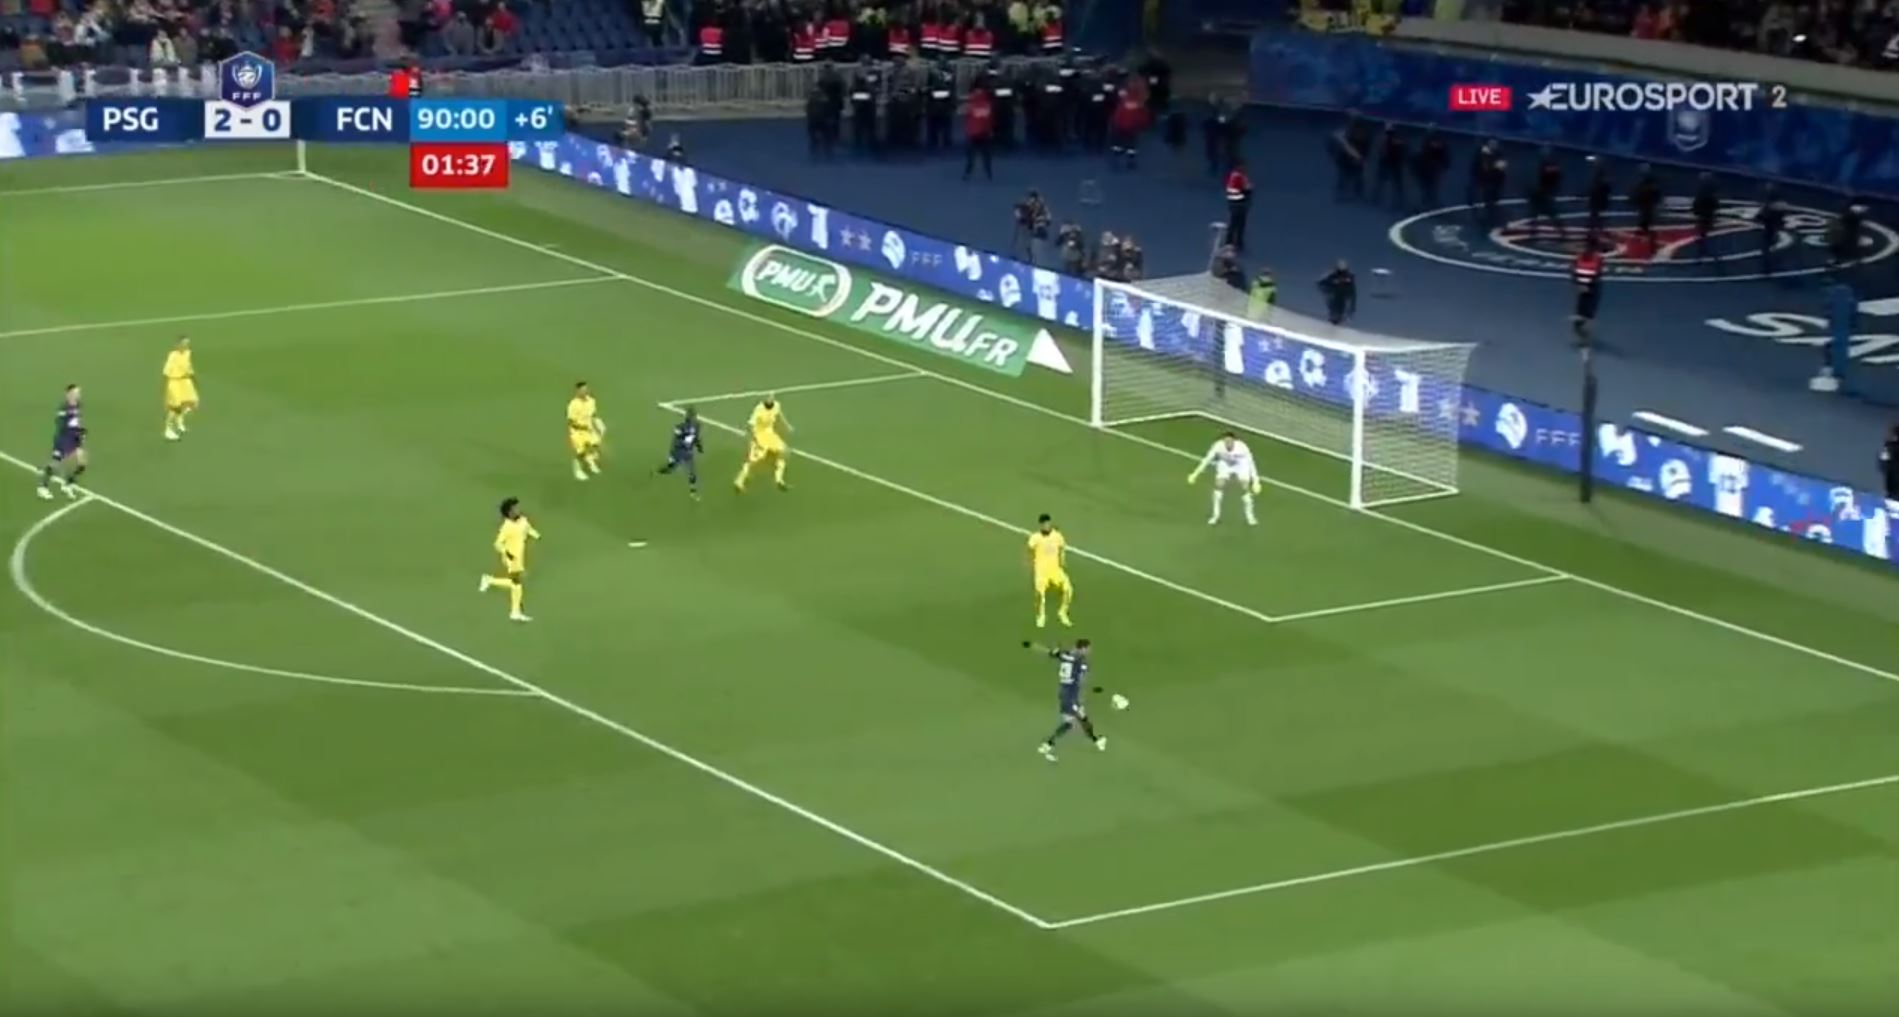 WATCH: Dani Alves Destroys Nantes Keeper With Outrageous Chip Goal!